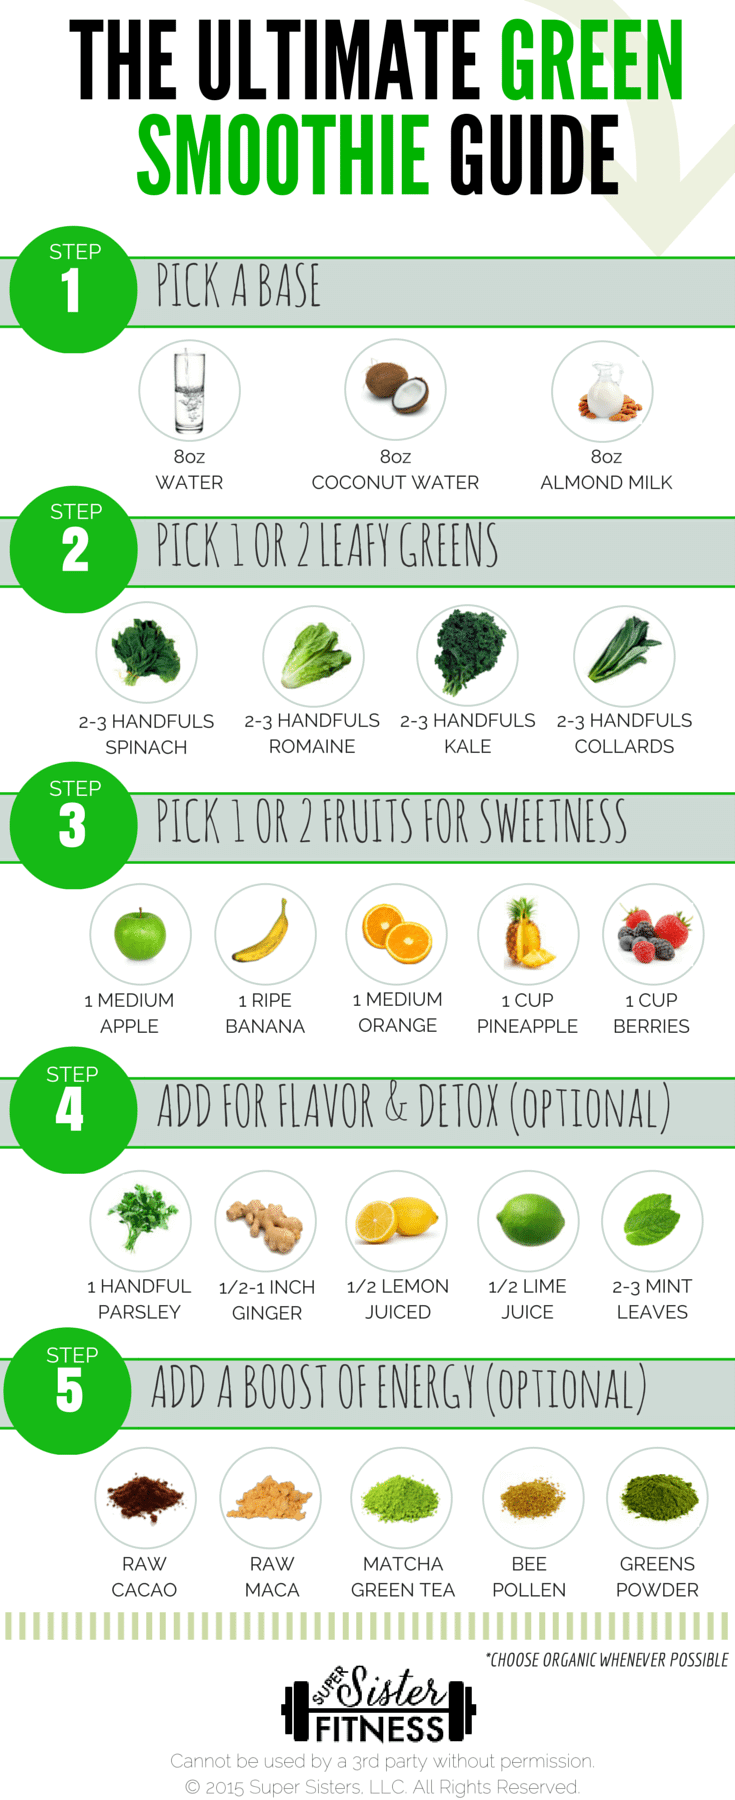 THE ULTIMATE GREEN SMOOTHIE GUIDE